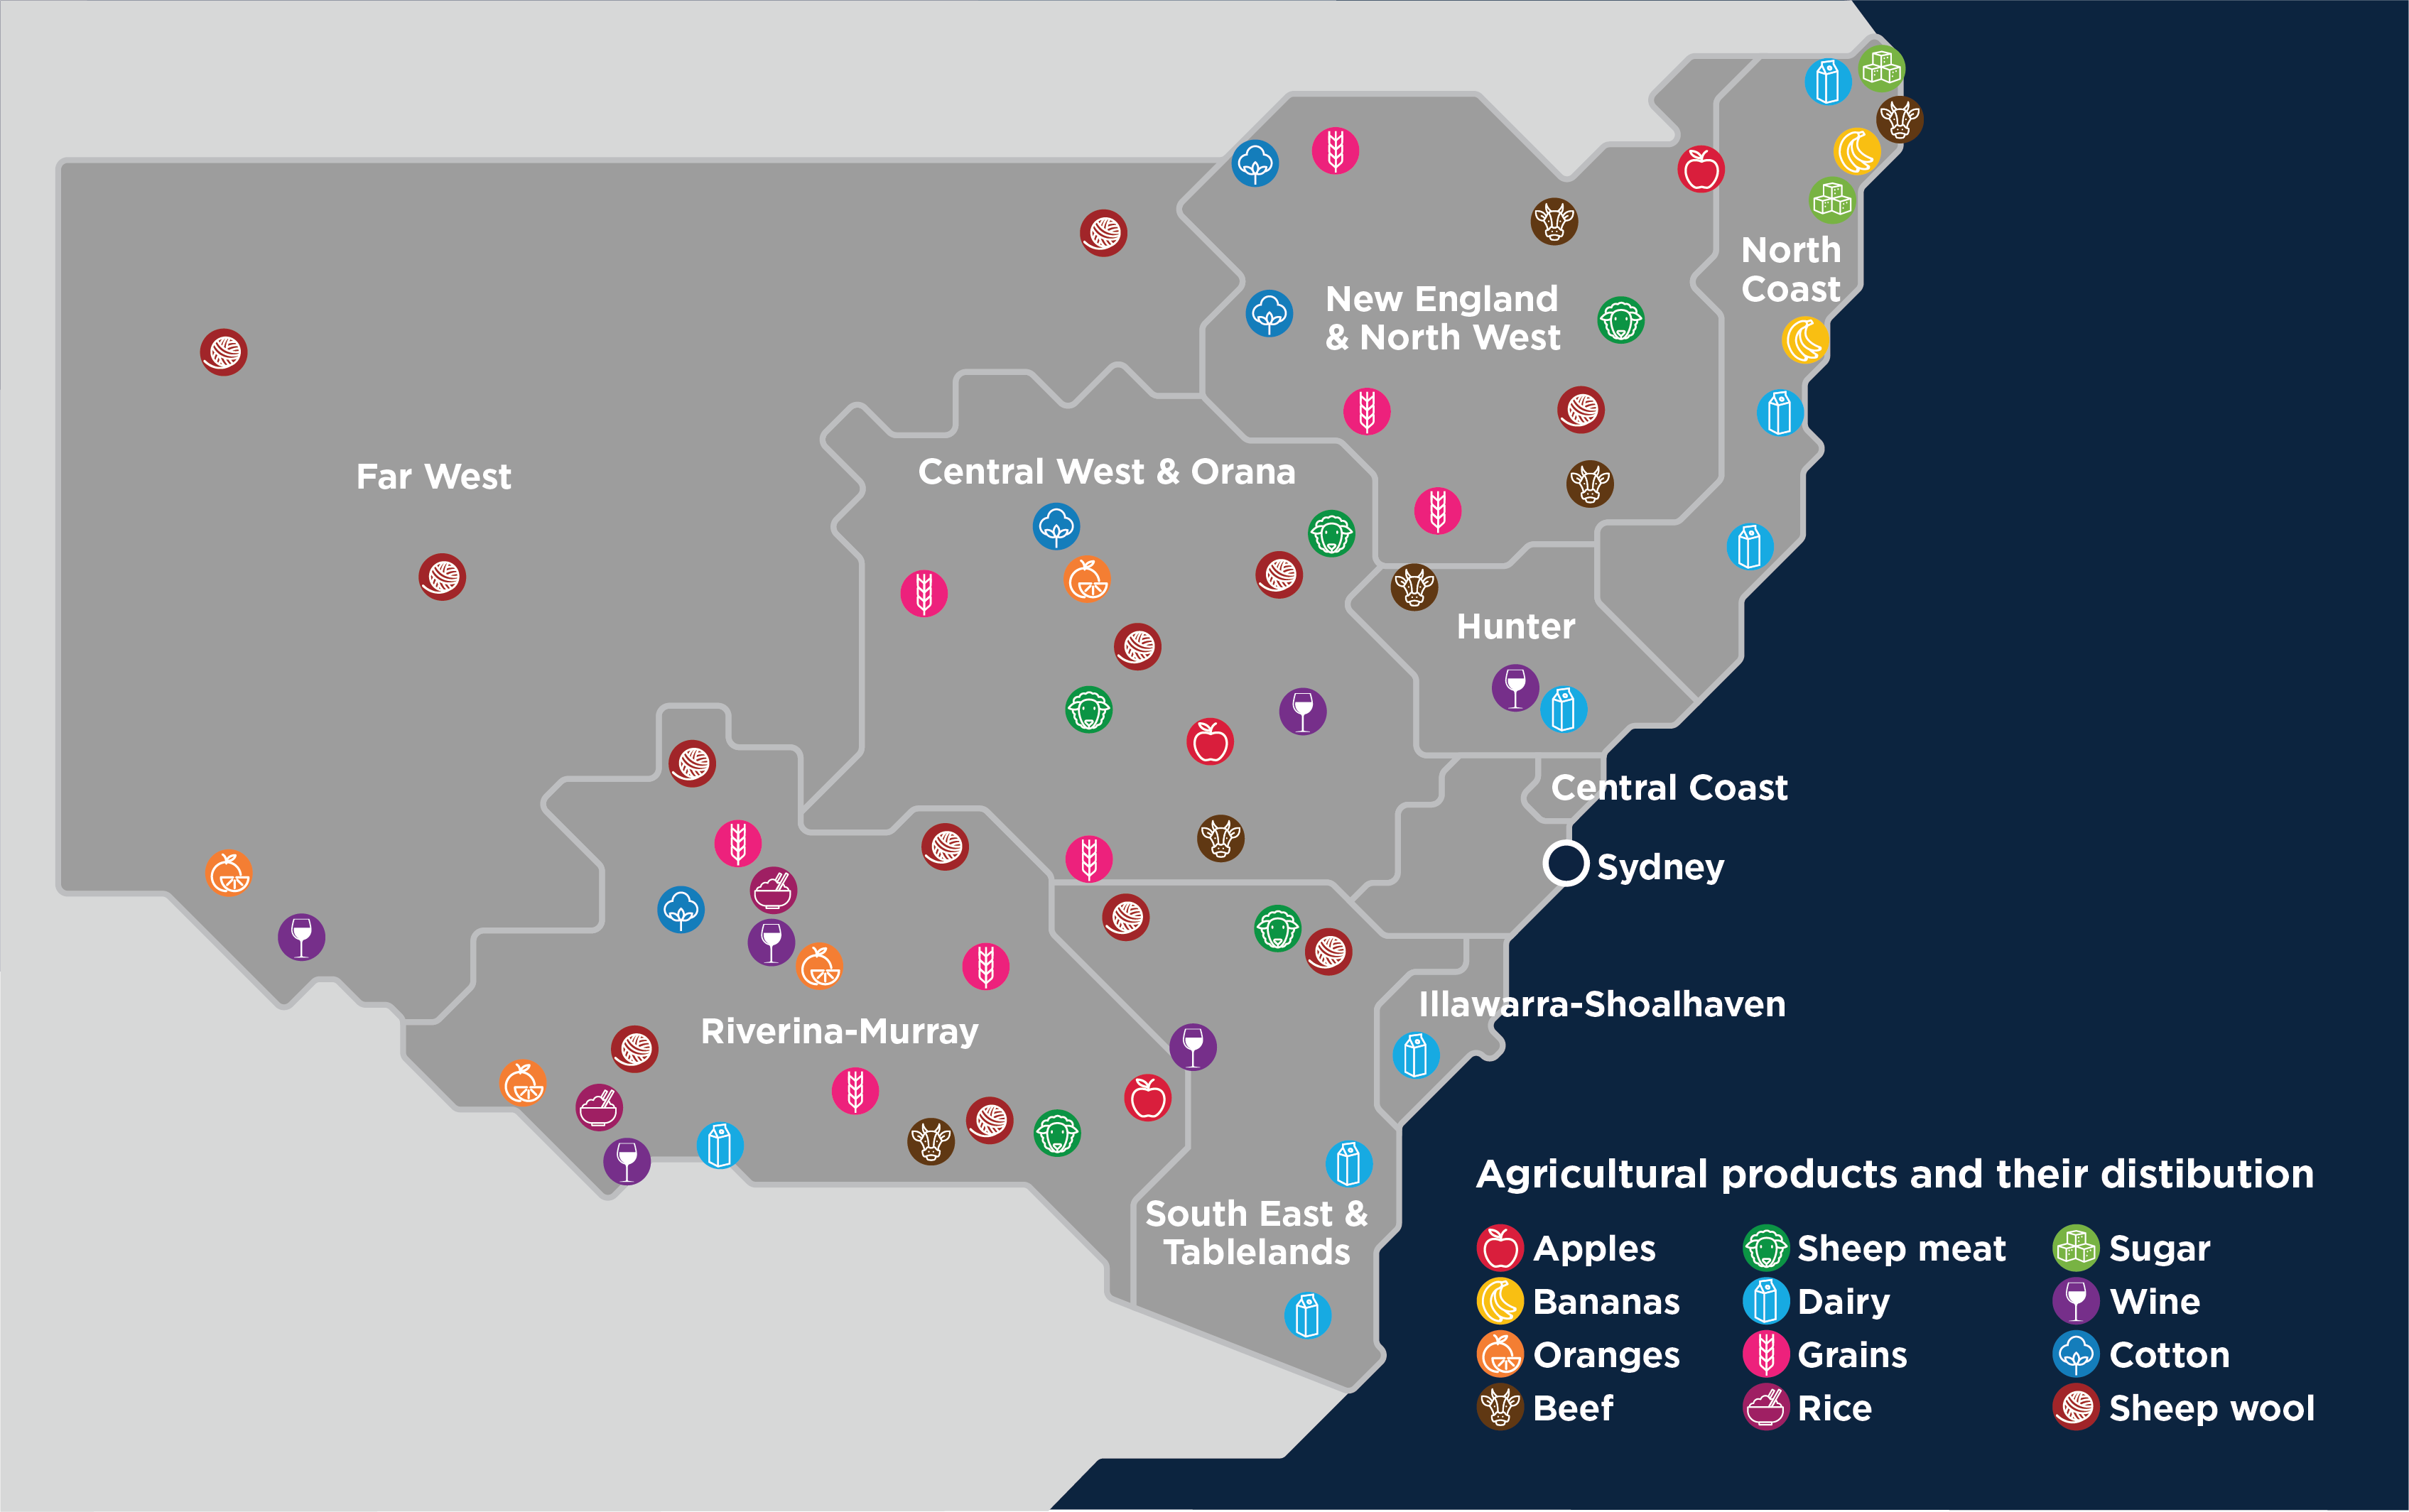 Which commodities are produced in Regional NSW?